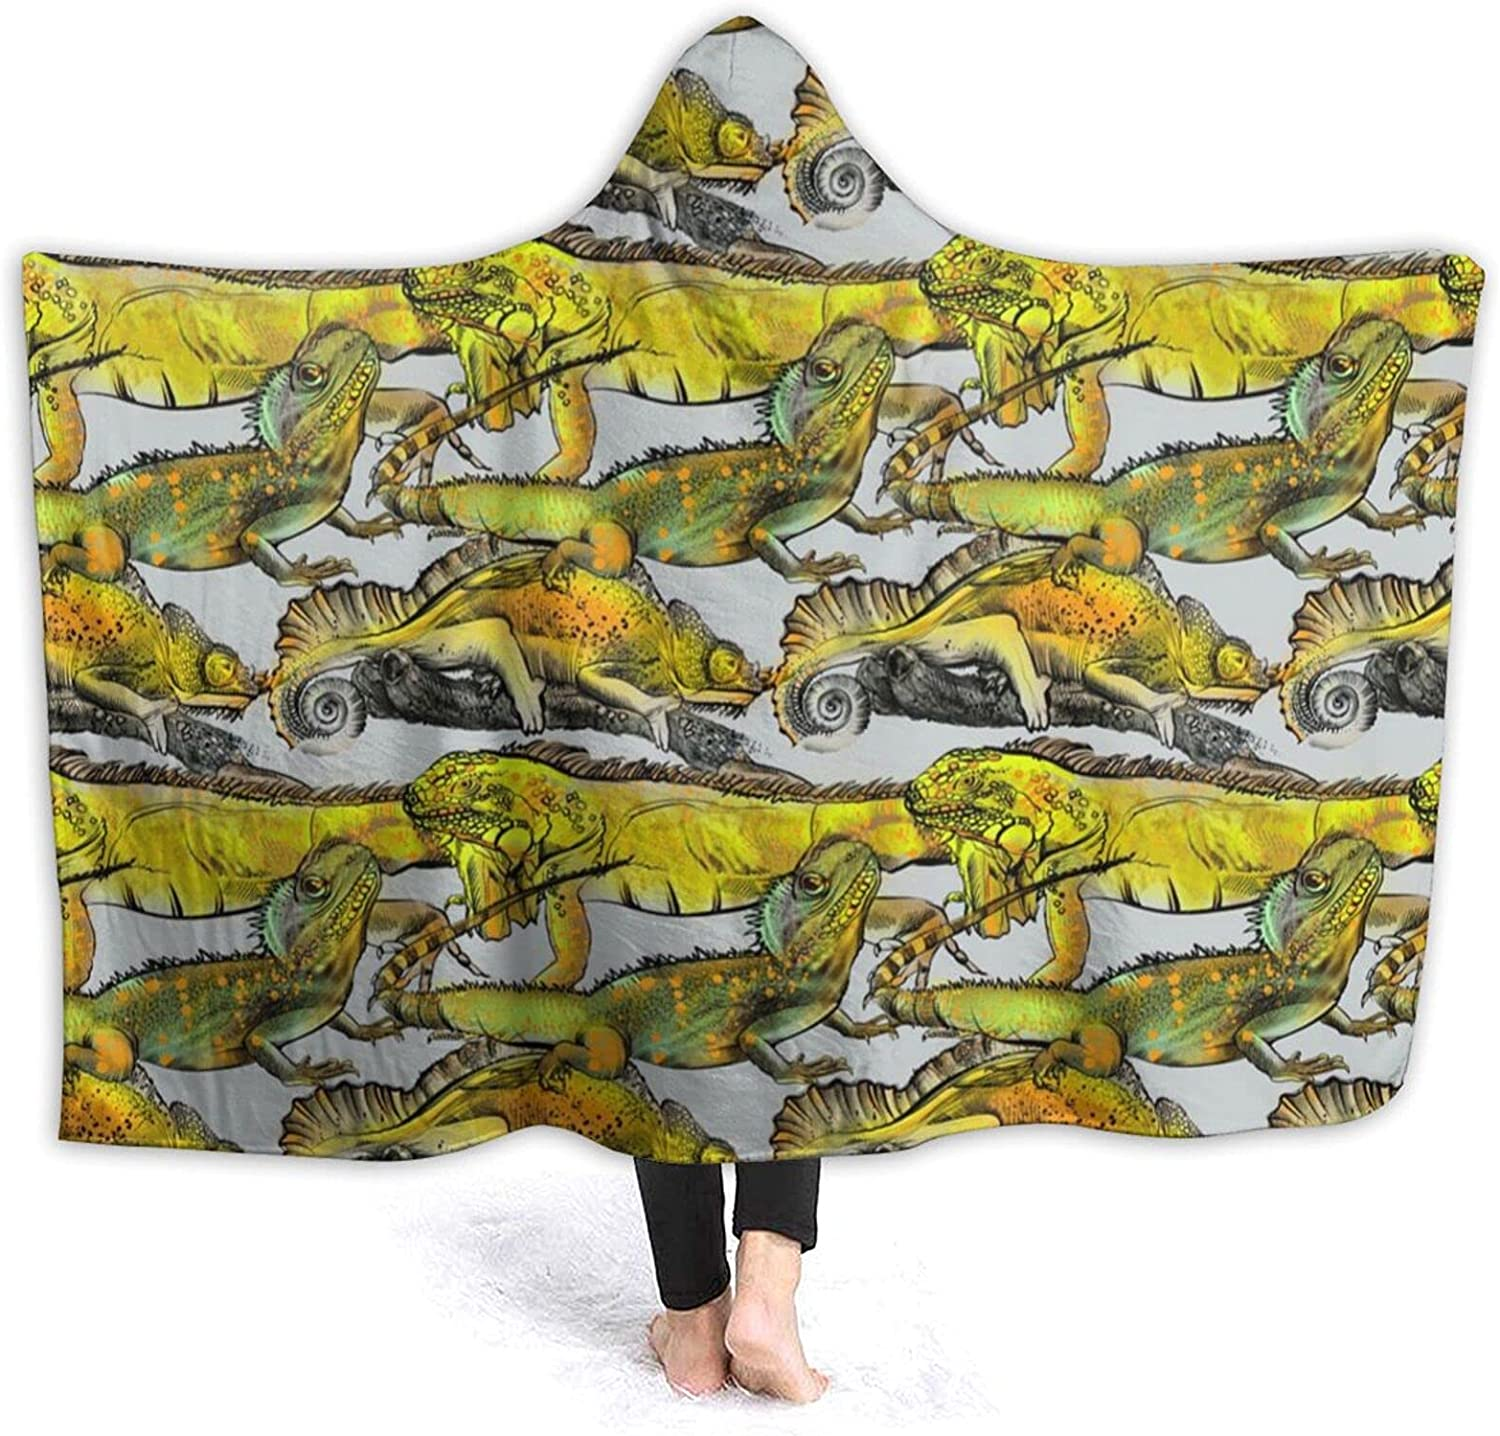 Hooded Blanket Limited time for free shipping Poncho 4 years warranty Wearable Wrap with Fl Flannel Soft